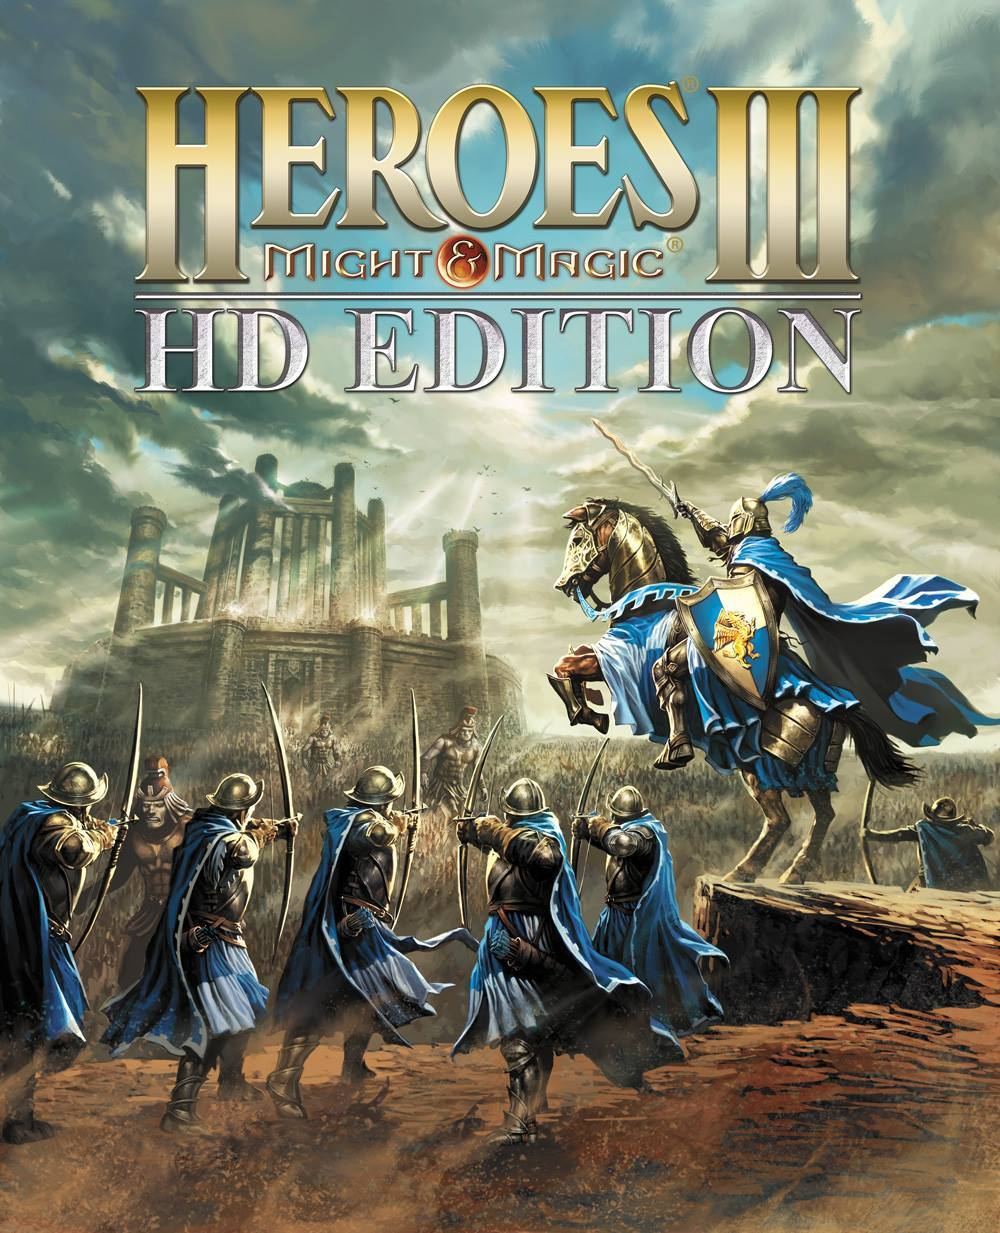 Le remake HD de Heroes of Might & Magic III est disponible sur les tablettes Android